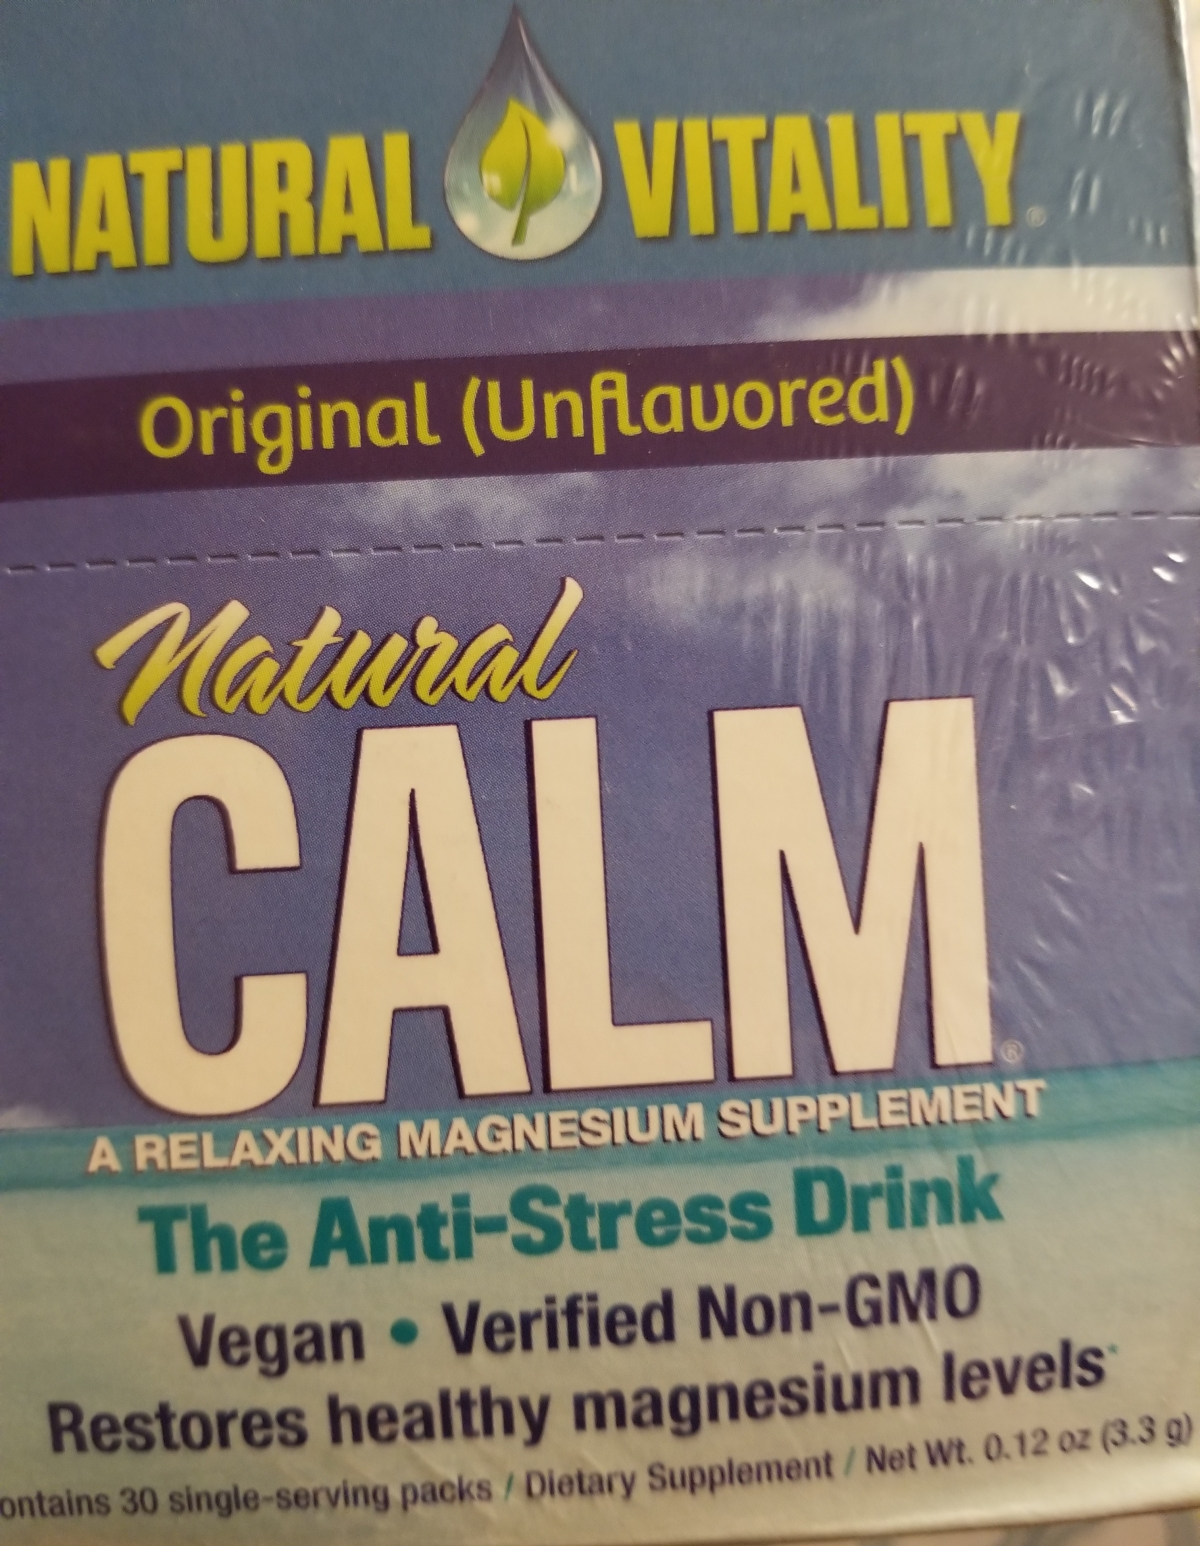 Calm Magnesium Supplement: Days 1-3 (Review)